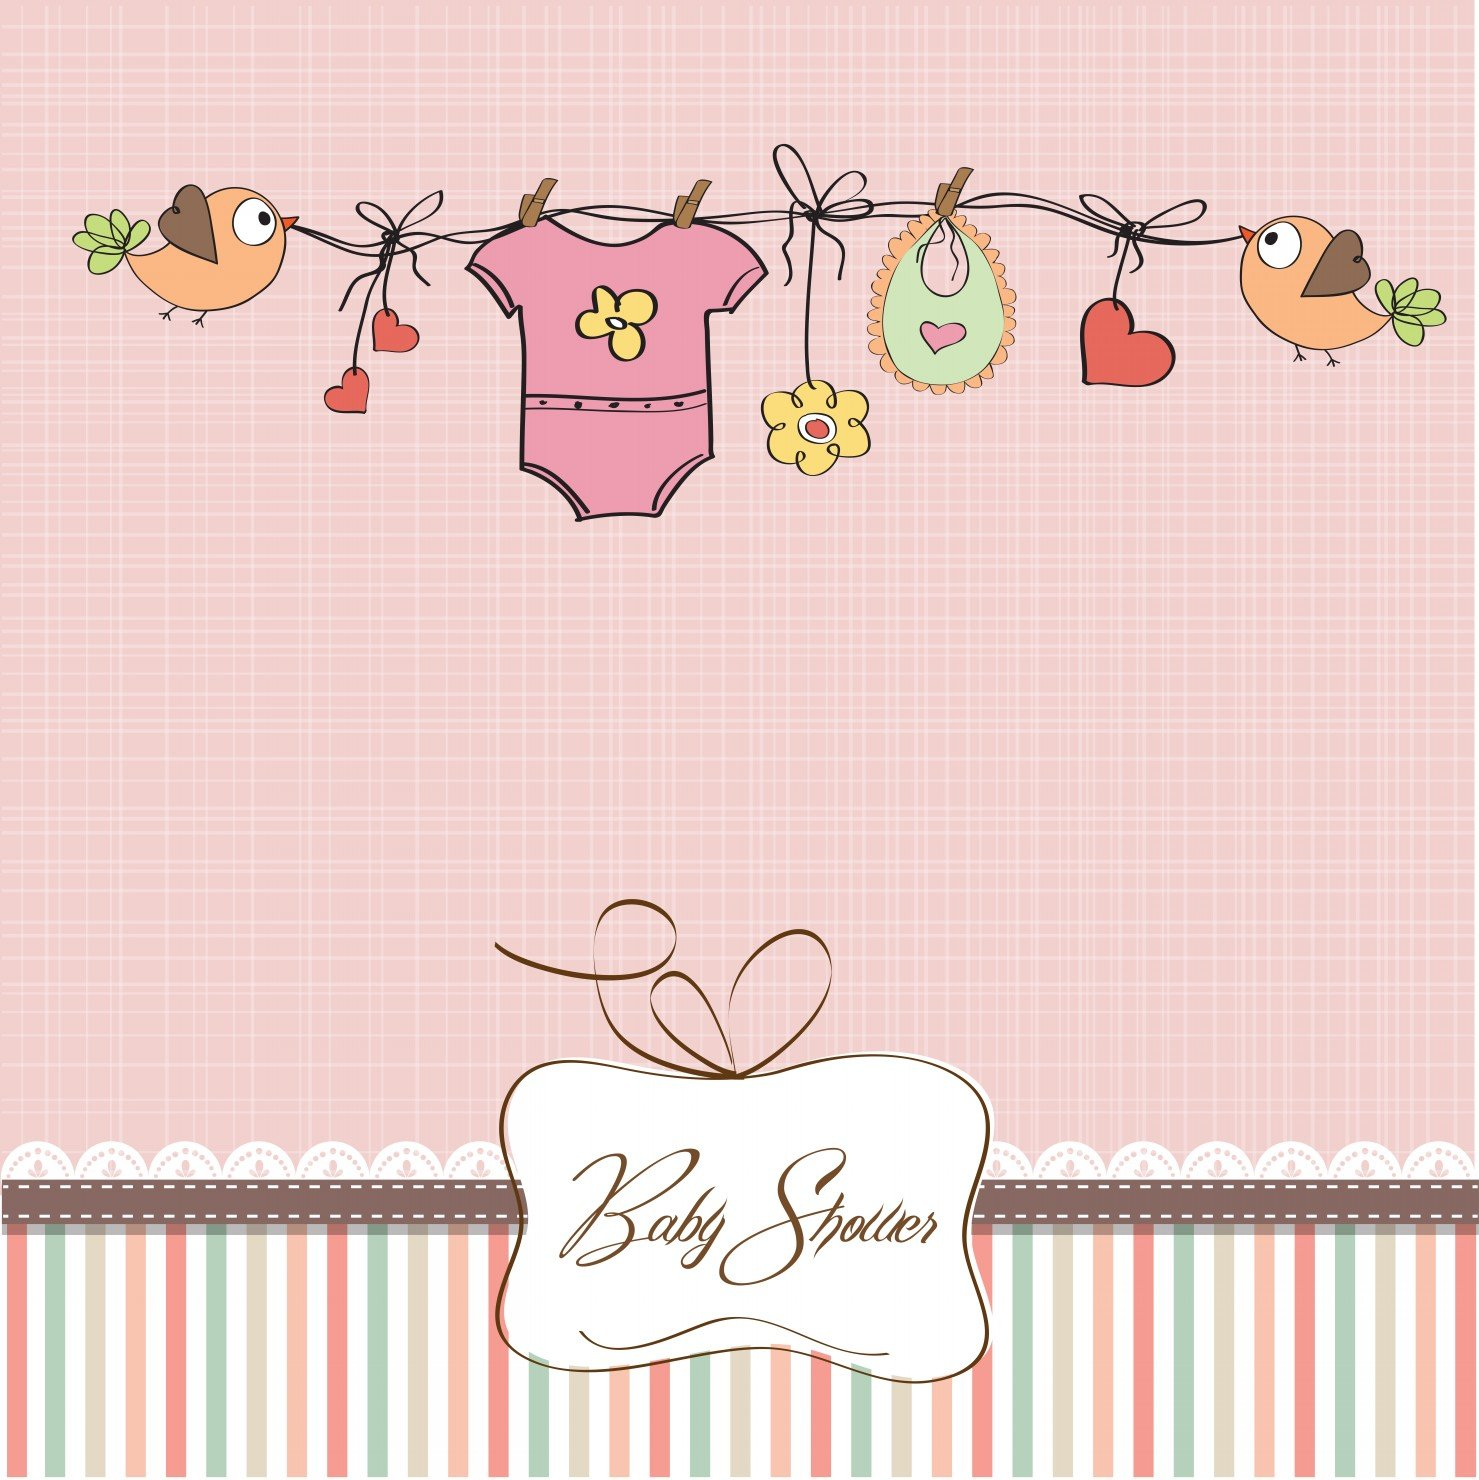 Quotes For A Baby Girl: Quotes For Baby Girl Cards. QuotesGram